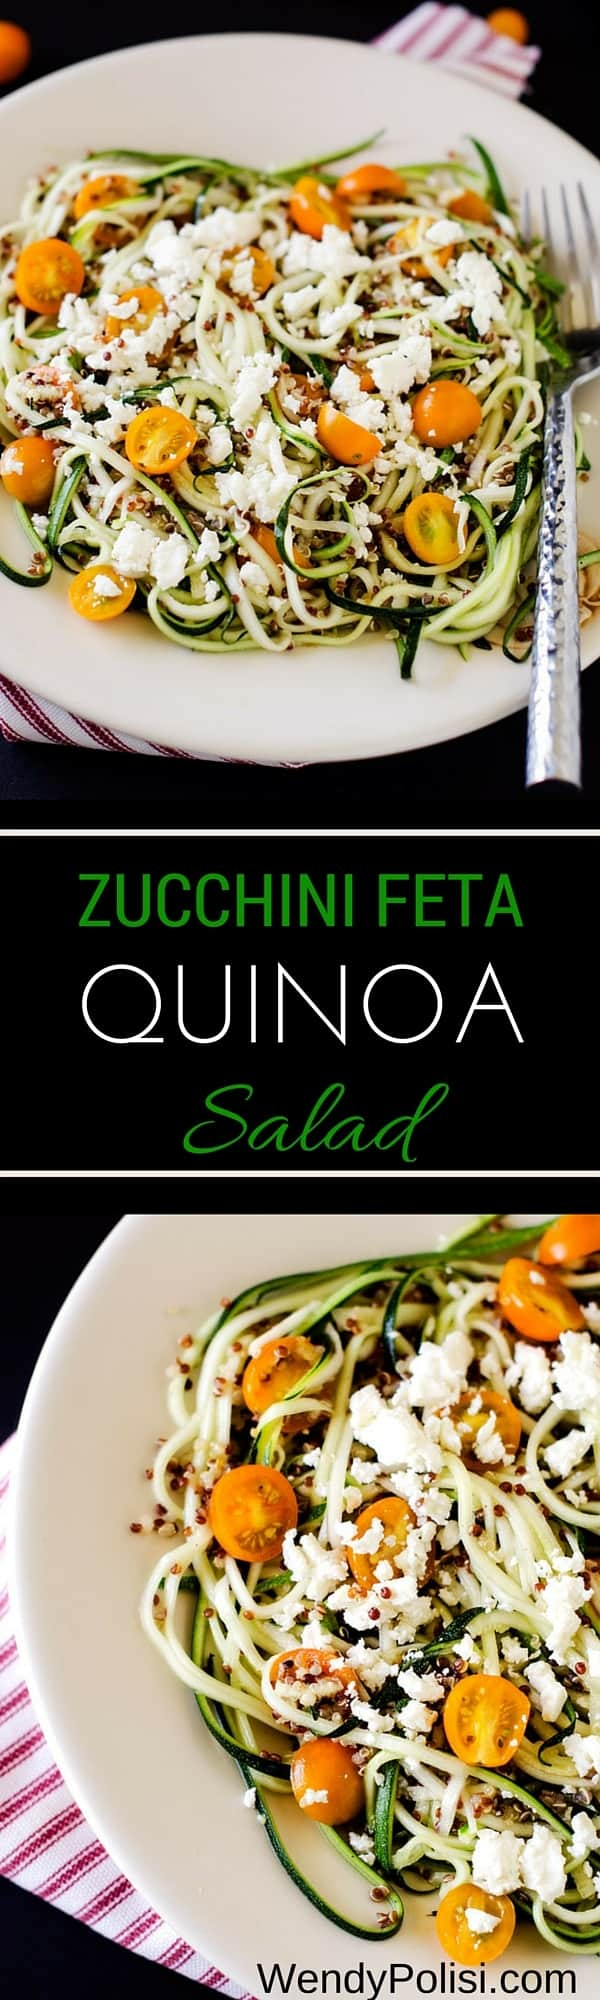 Zucchini Feta Quinoa Salad with Lemon Dill Dressing - Wendy Polisi